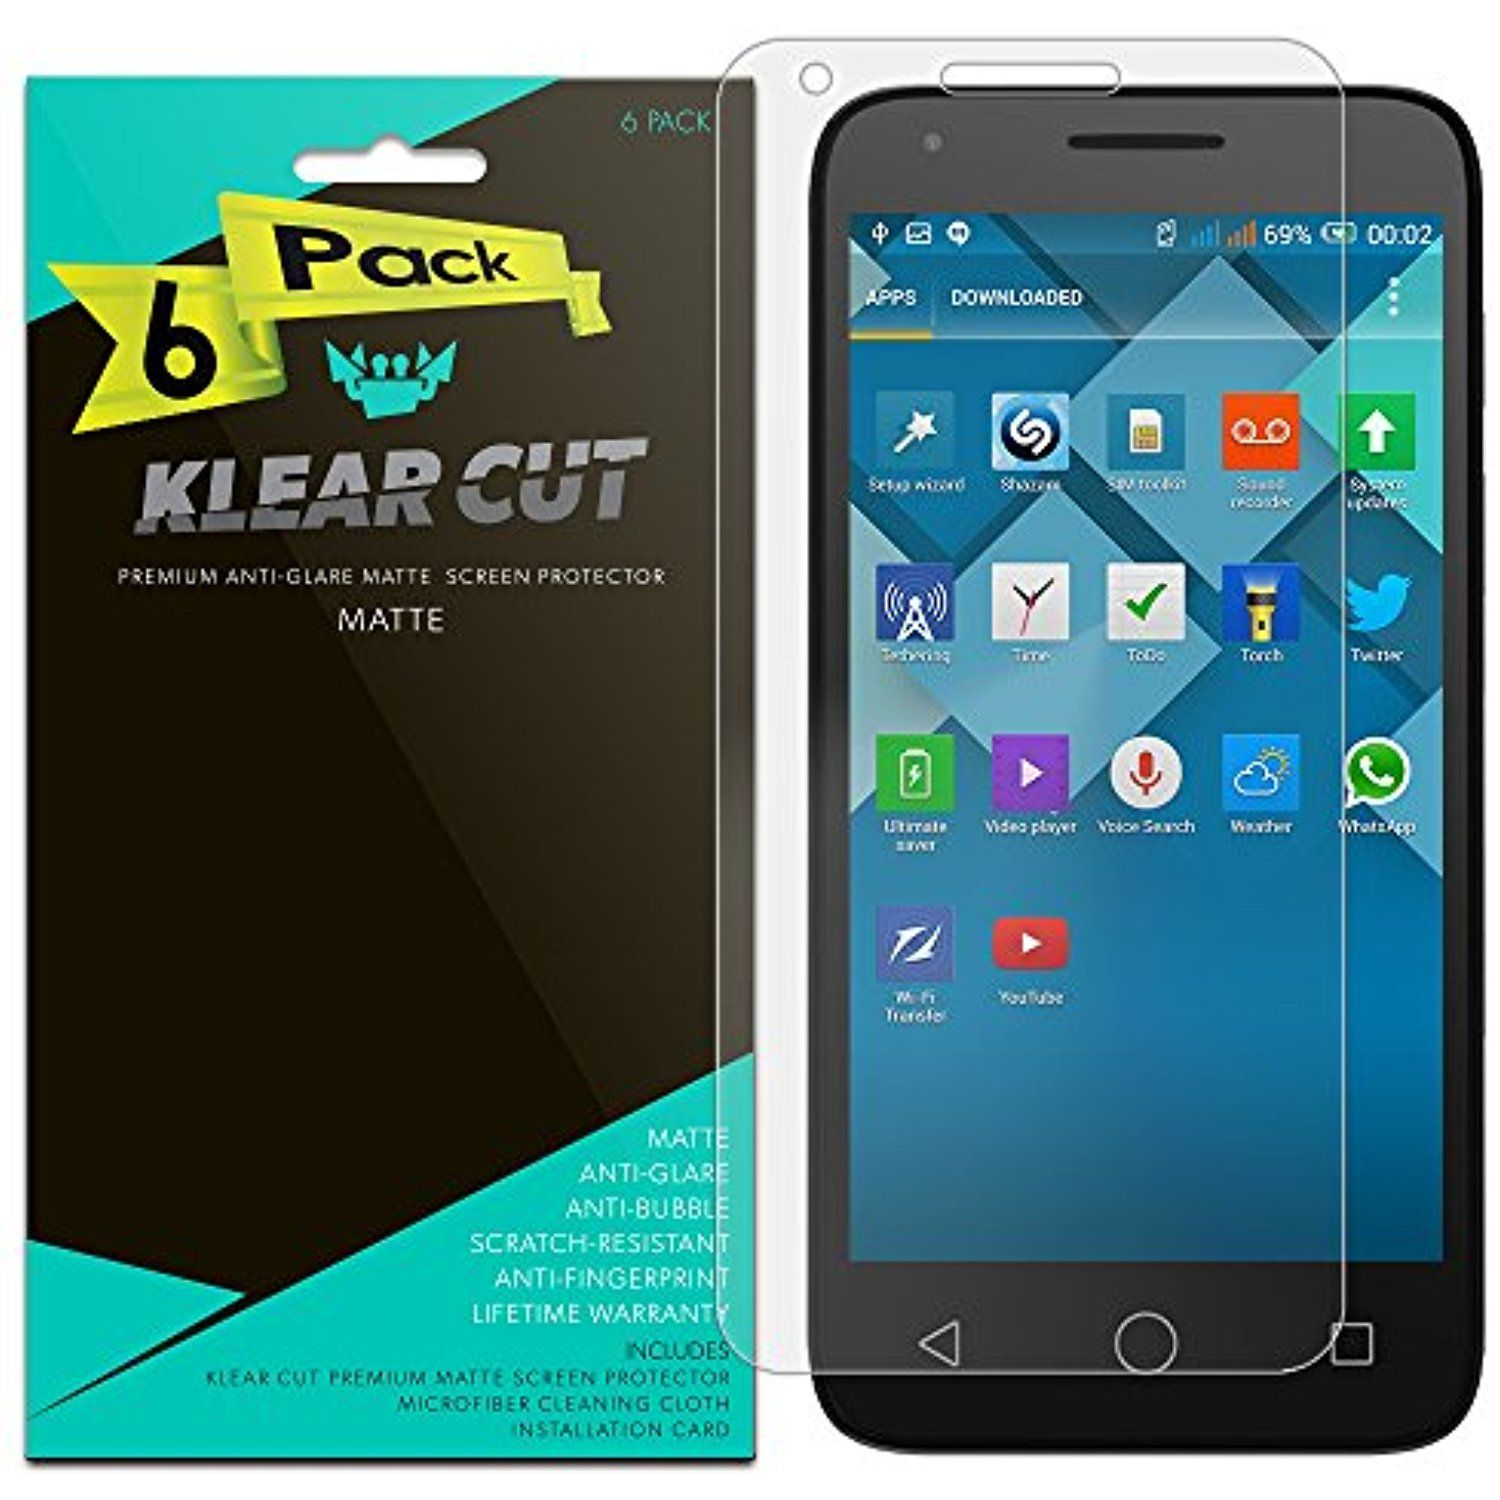 9dab7d9c737 Alcatel Onetouch Pixi 3 45 Screen Protector 6 Pack Klear Cut